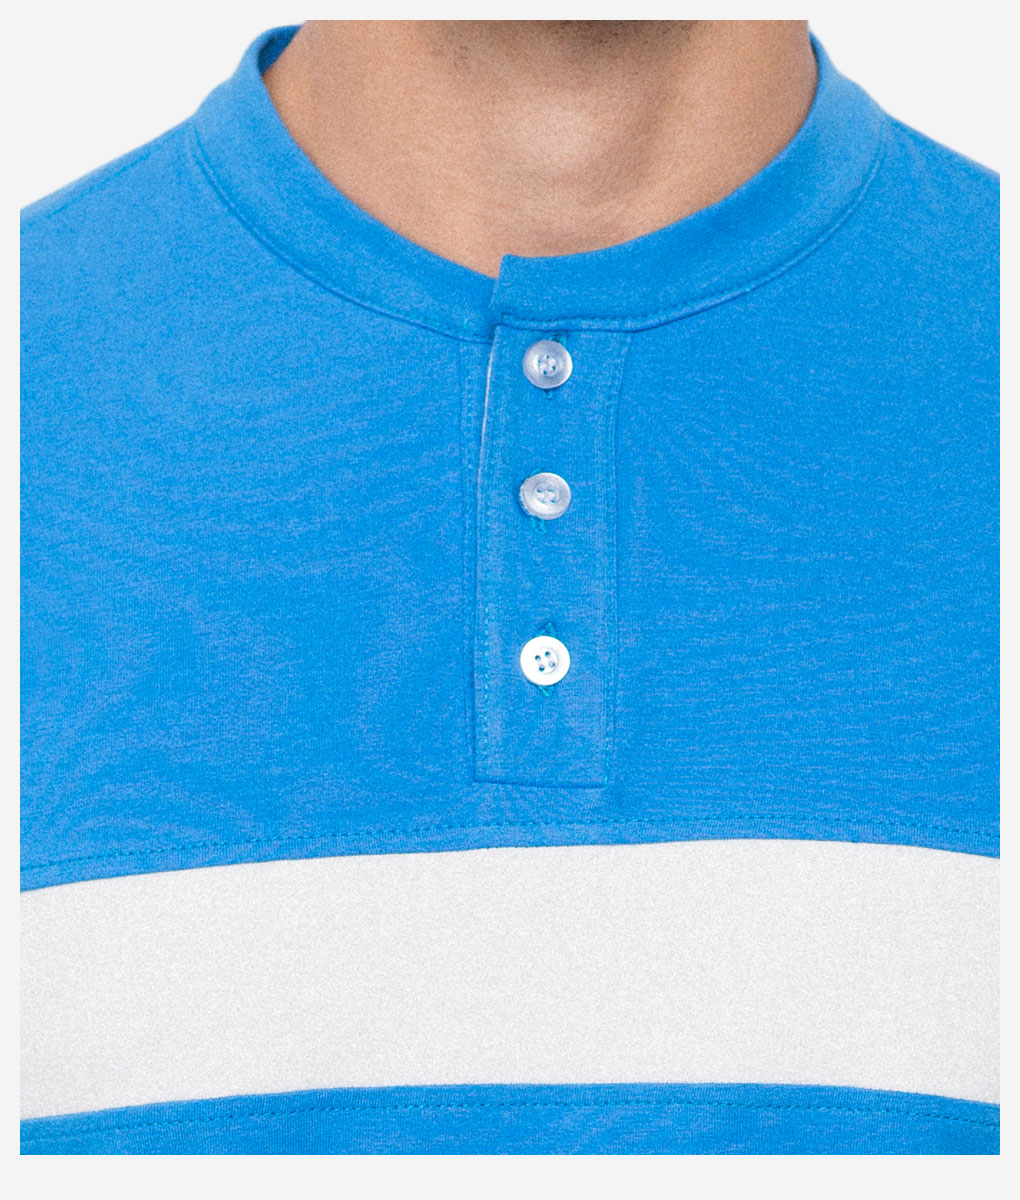 casual-cycling-classoc-blue-tee-detail-chest